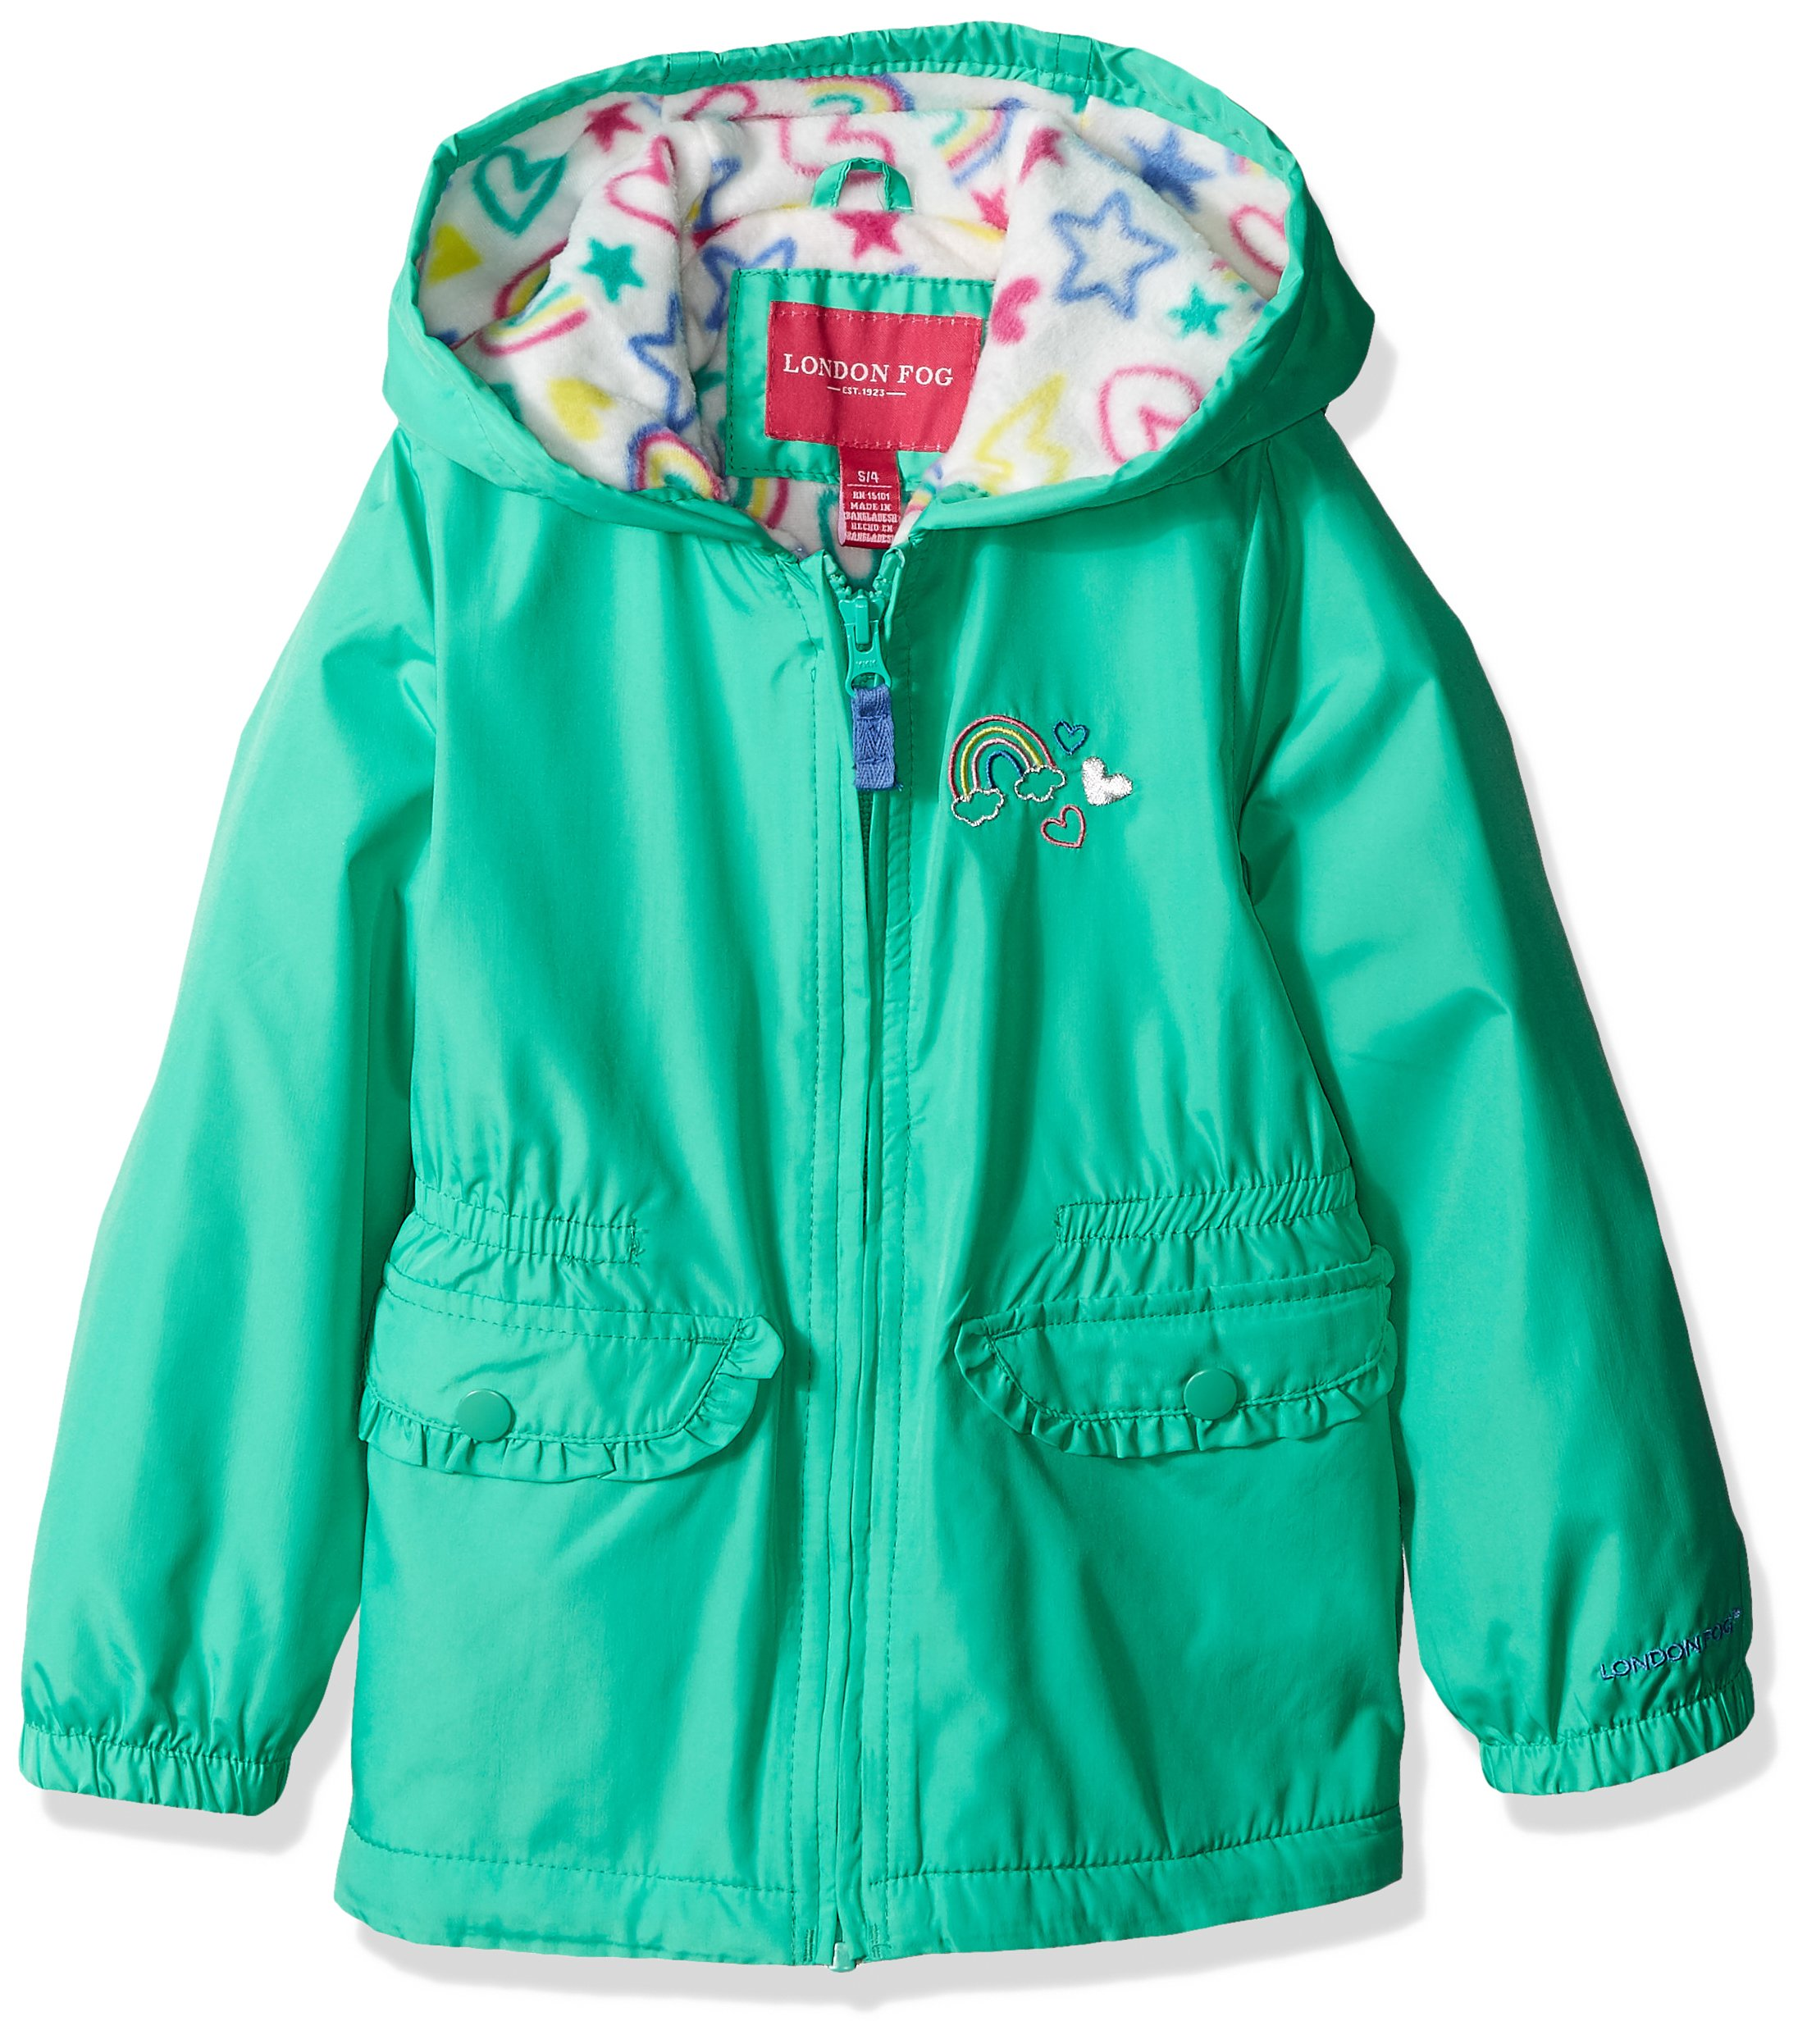 London Fog Little Girls' Fleece Lined Midweight Jacket with Rouched Waist, Mint Leaf, 6X by London Fog